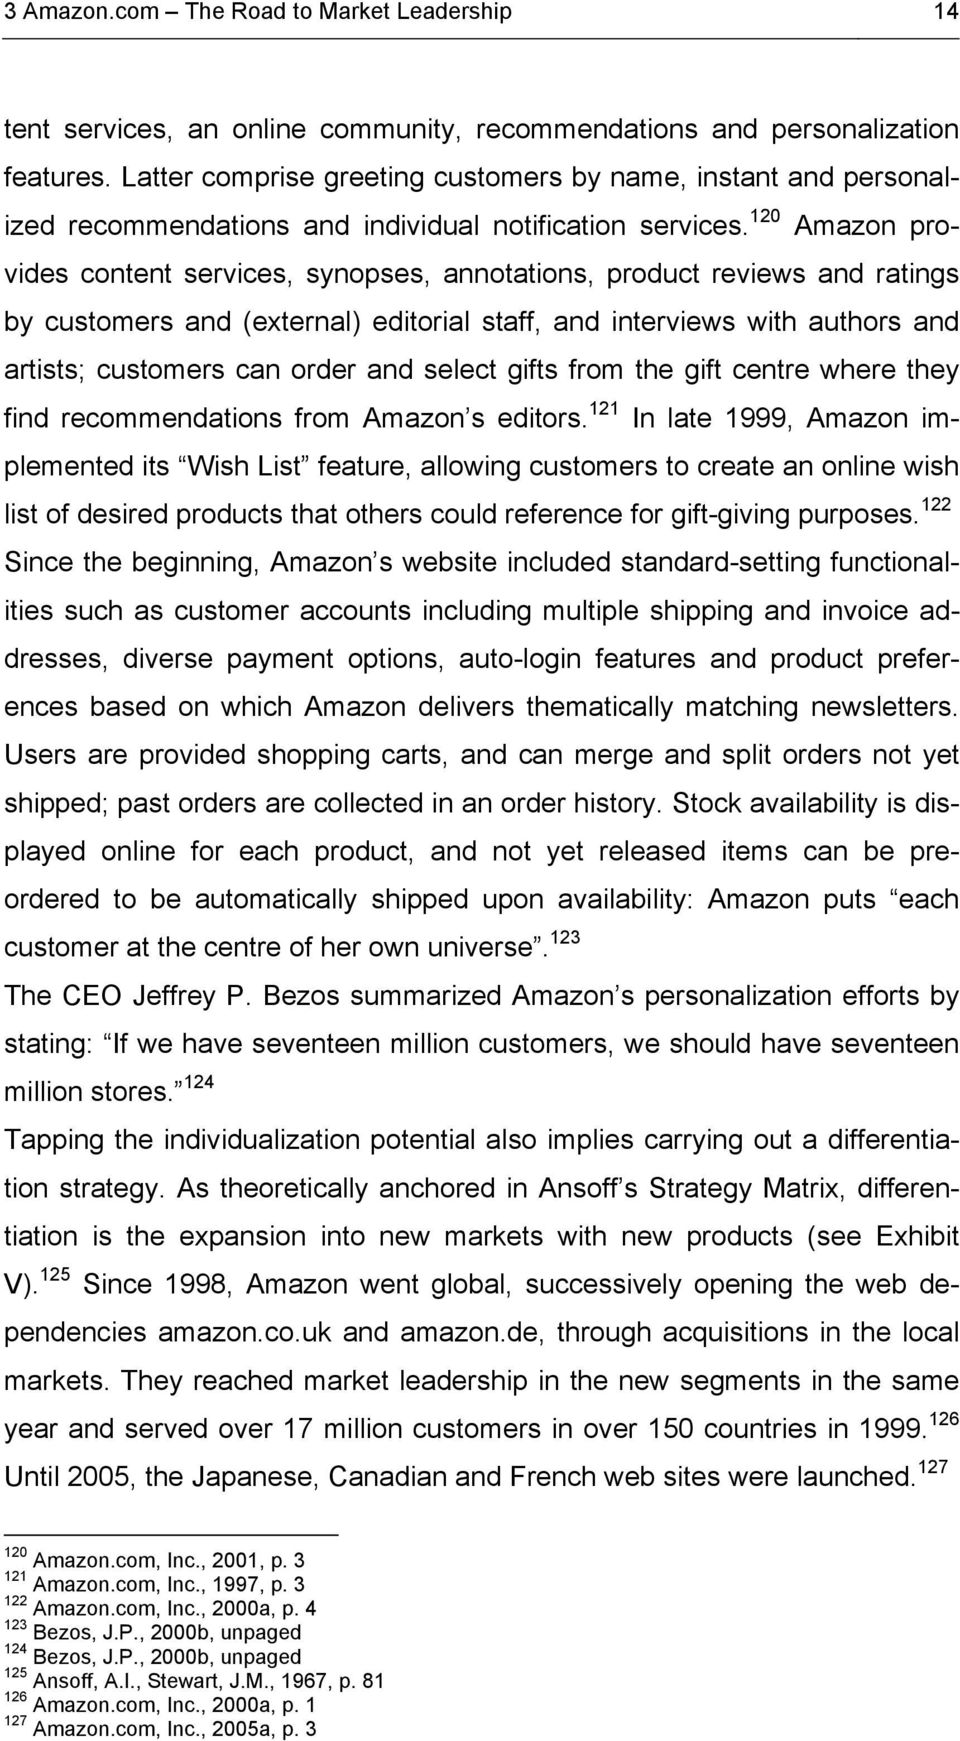 120 Amazon provides content services, synopses, annotations, product reviews and ratings by customers and (external) editorial staff, and interviews with authors and artists; customers can order and